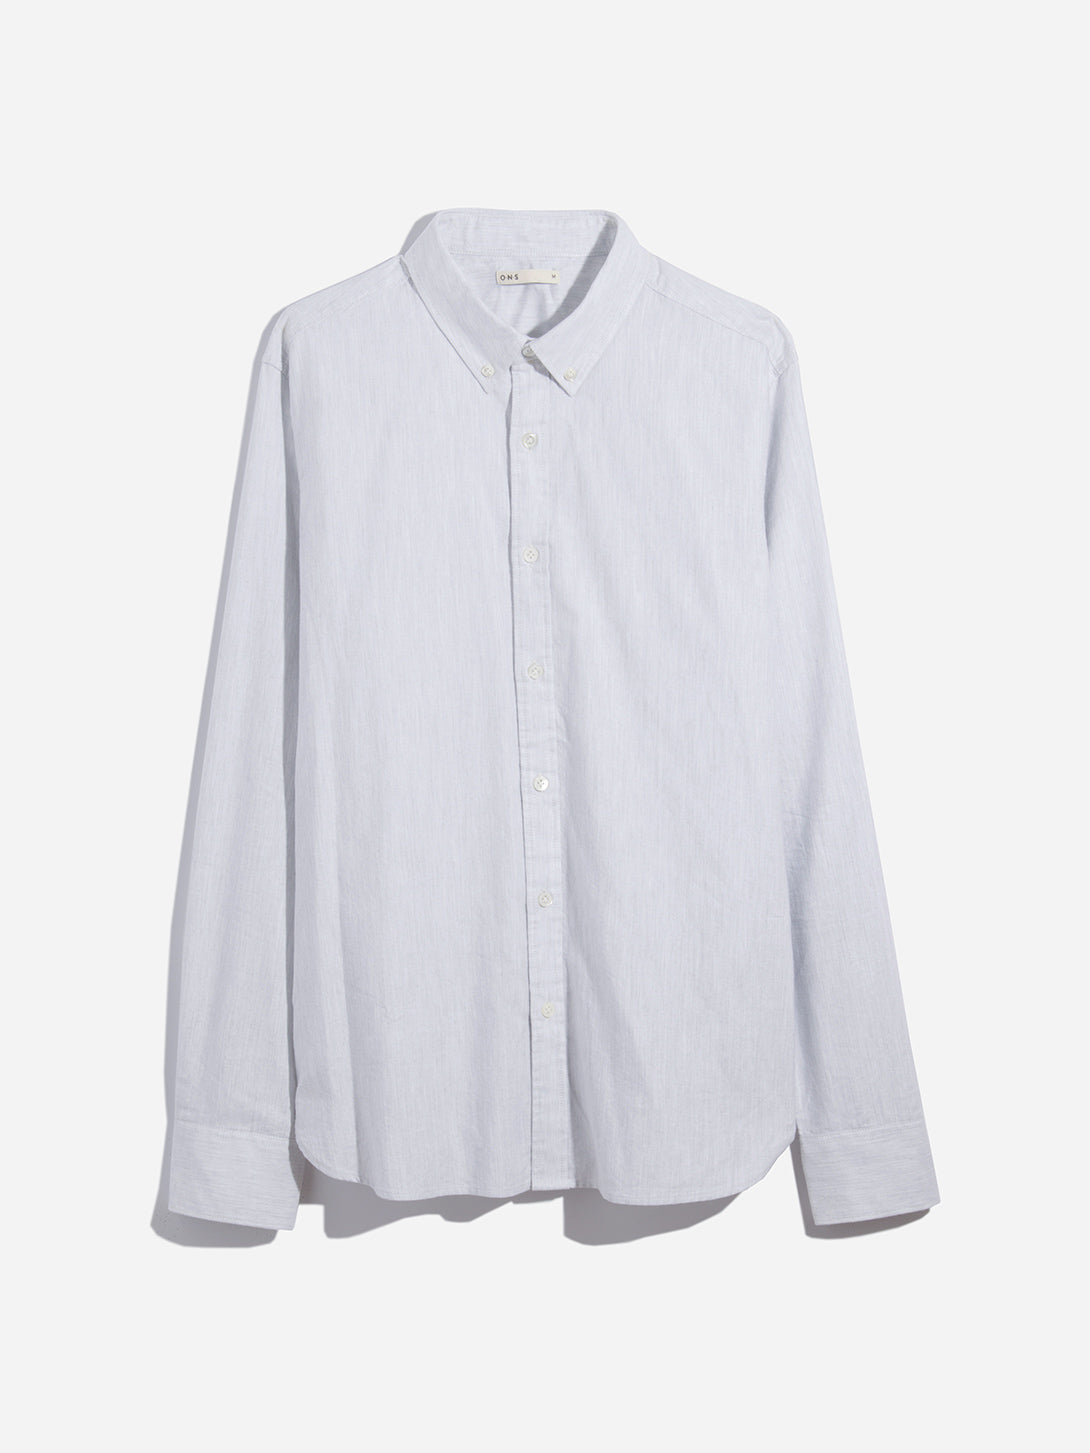 HEATHER GREY mens oxford shirt fulton oxford shirt blue heather